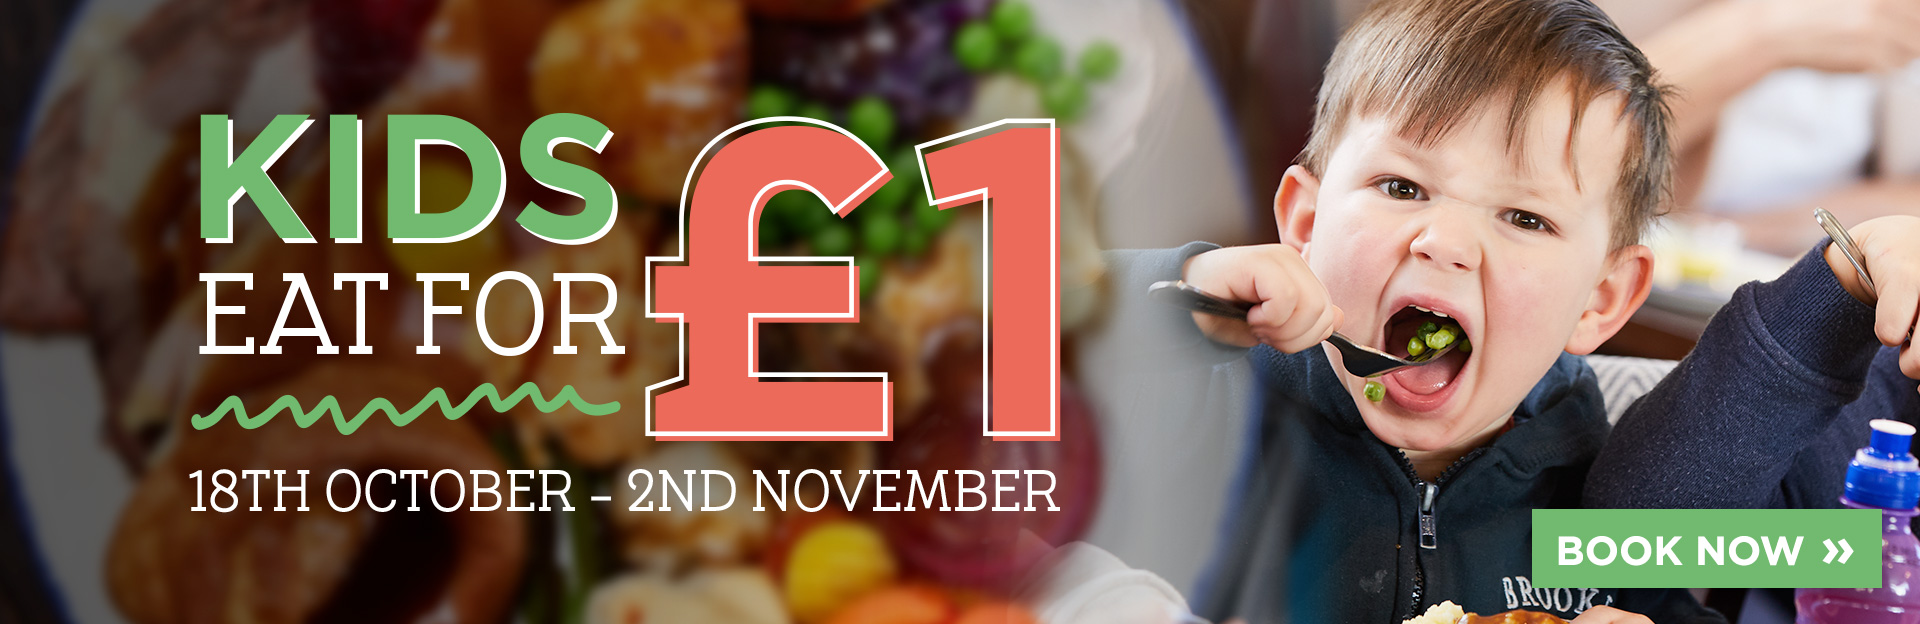 Kids eat for £1 at The Micker Brook